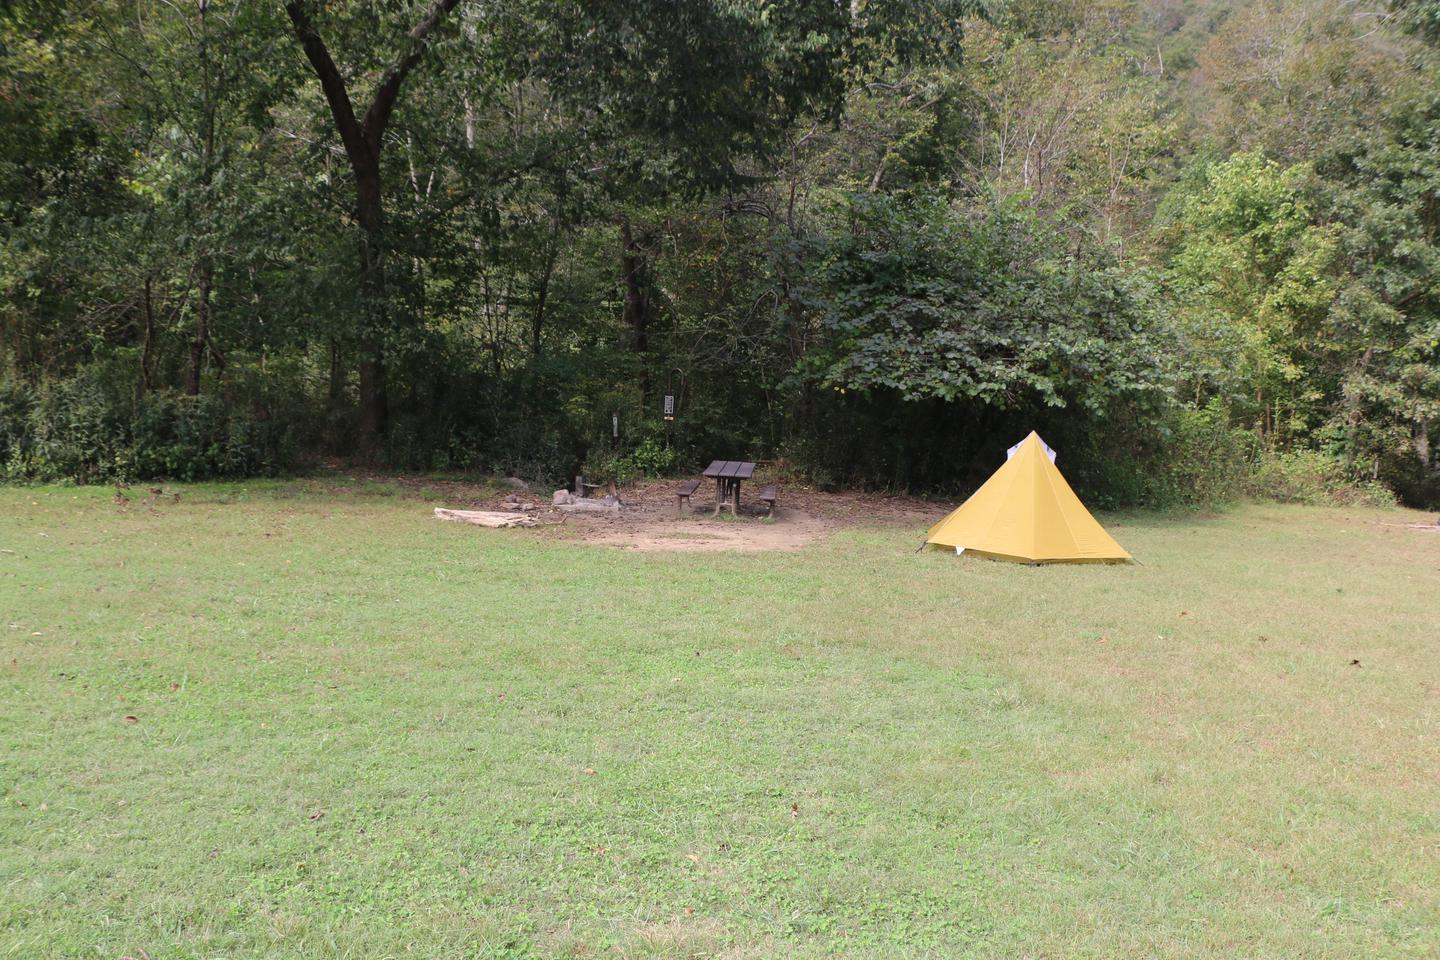 Steel Creek Camp Site #22 (photo 4)Steel Creek Camp Site #22